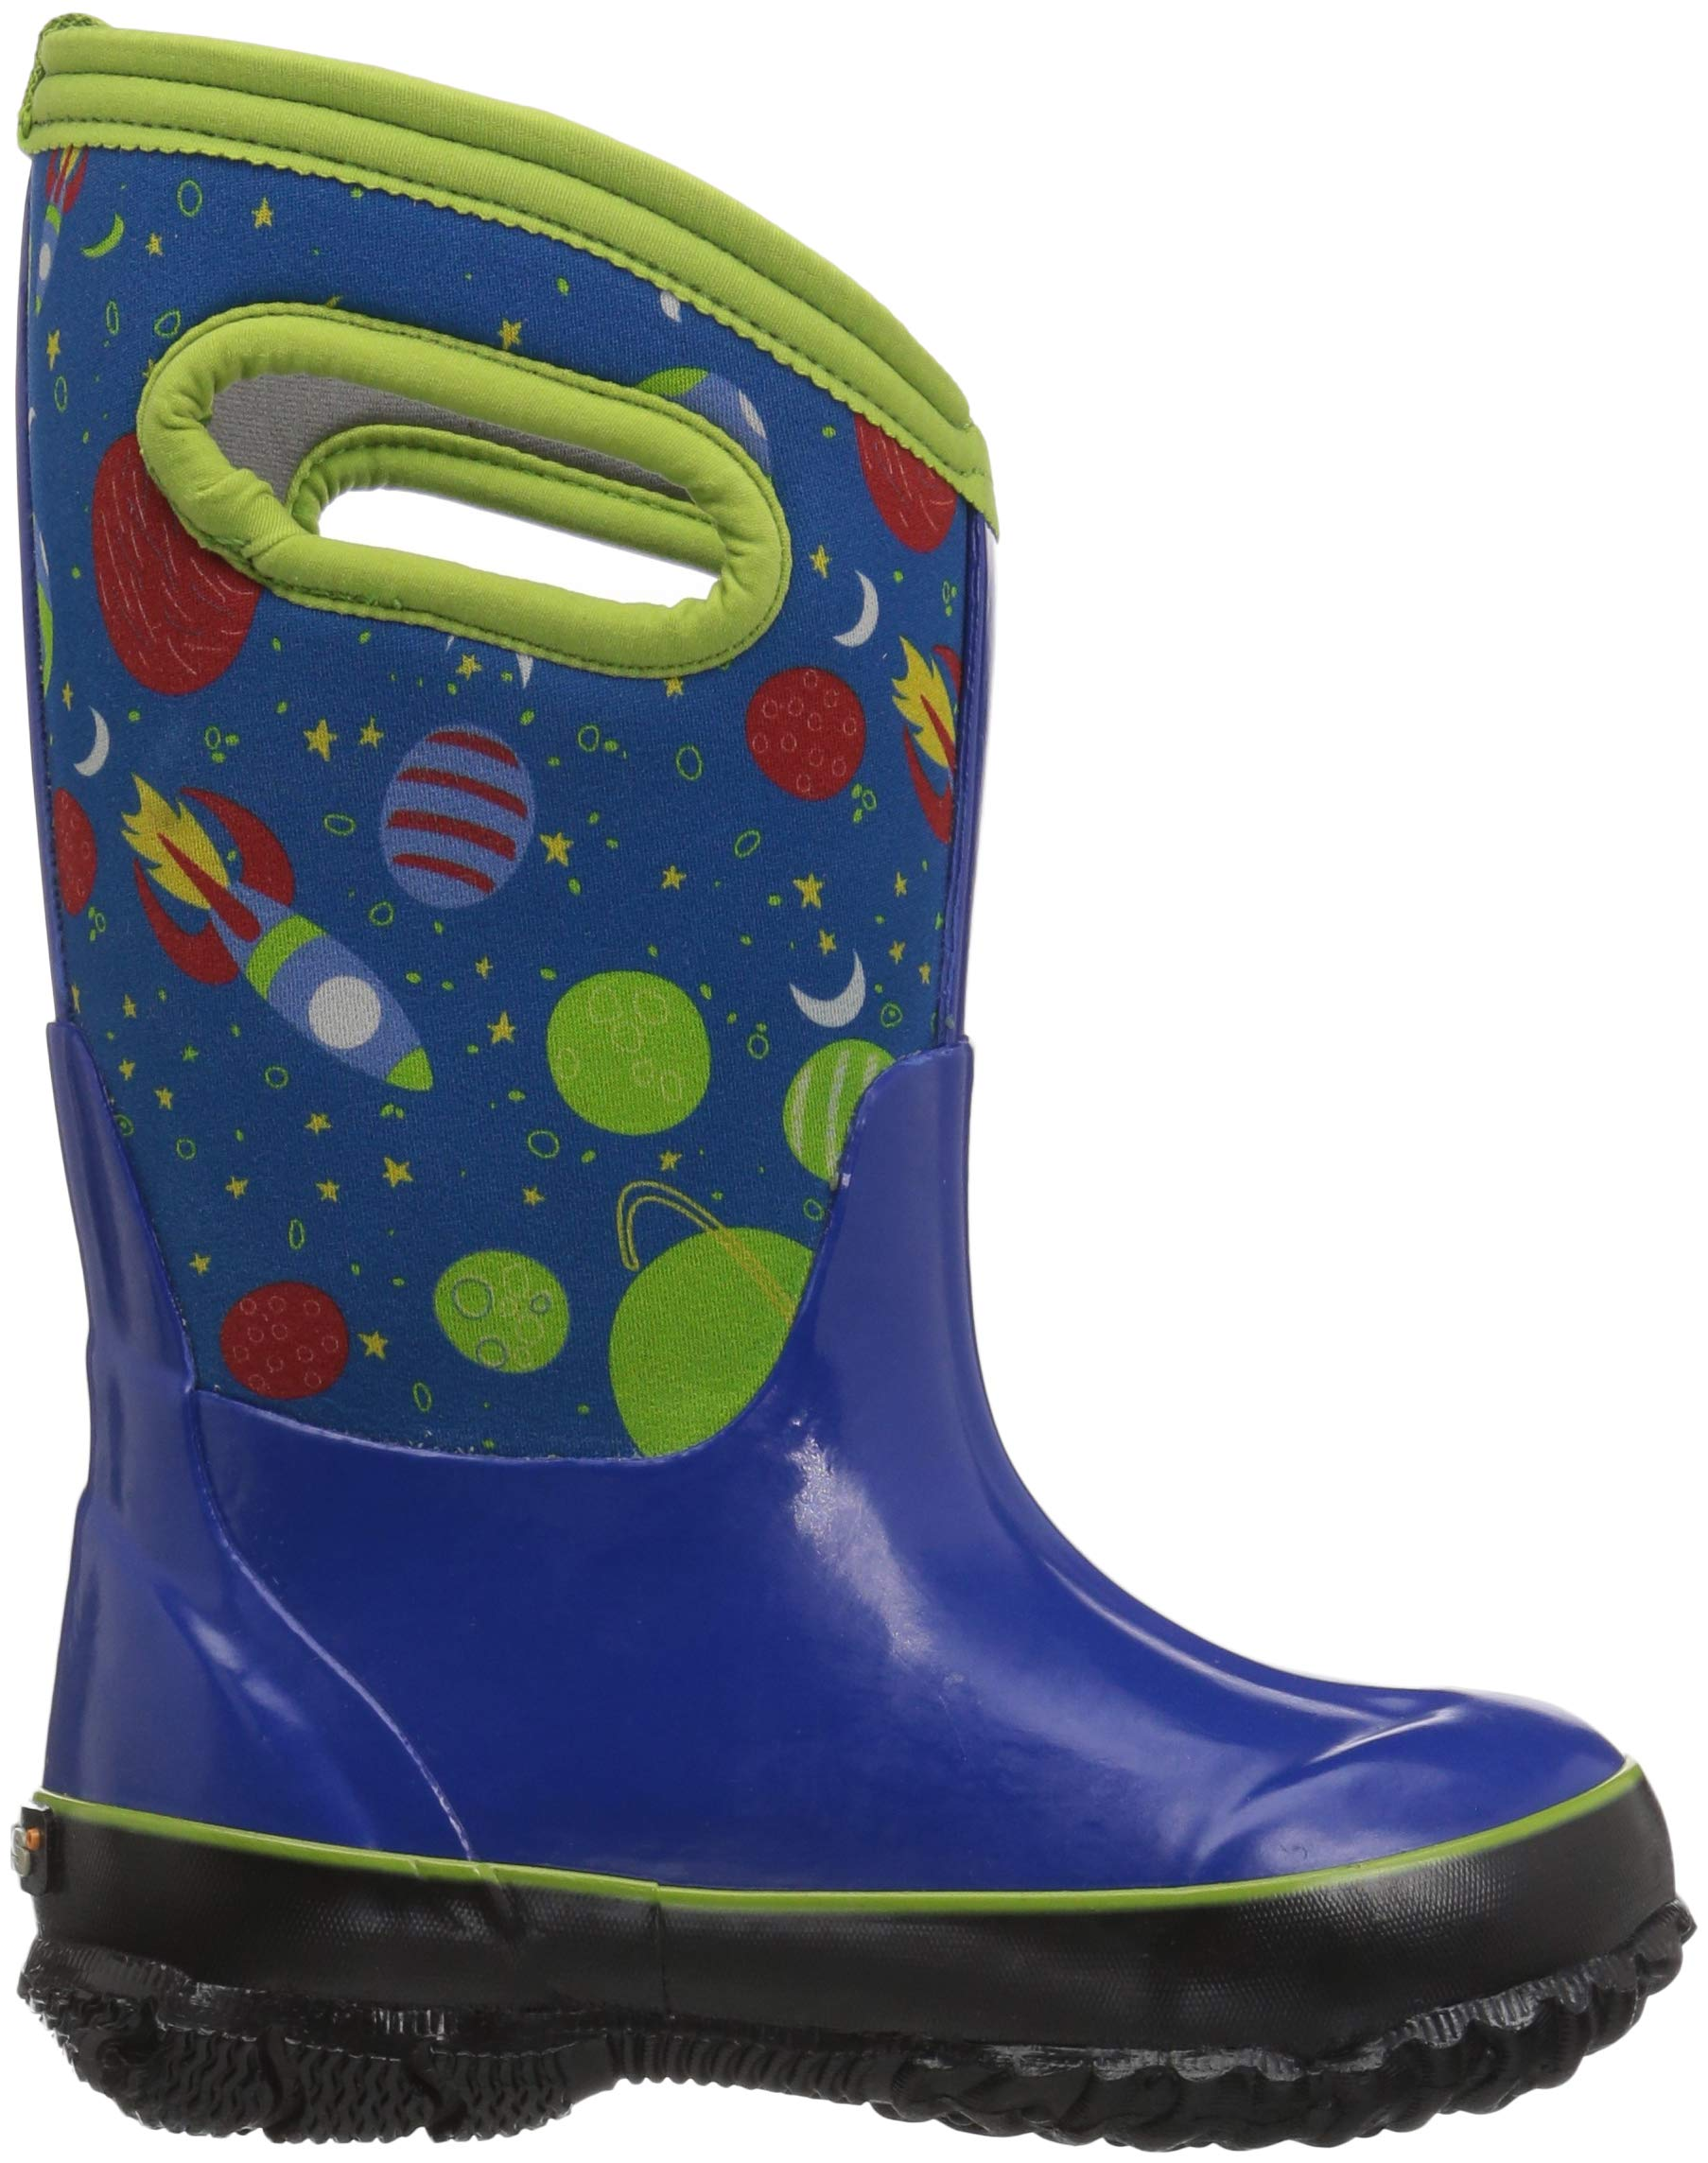 Bogs Classic High Waterproof Insulated Rubber Neoprene Rain Boot Snow, Space Blue/Multi, 11 M US Little Kid by Bogs (Image #7)